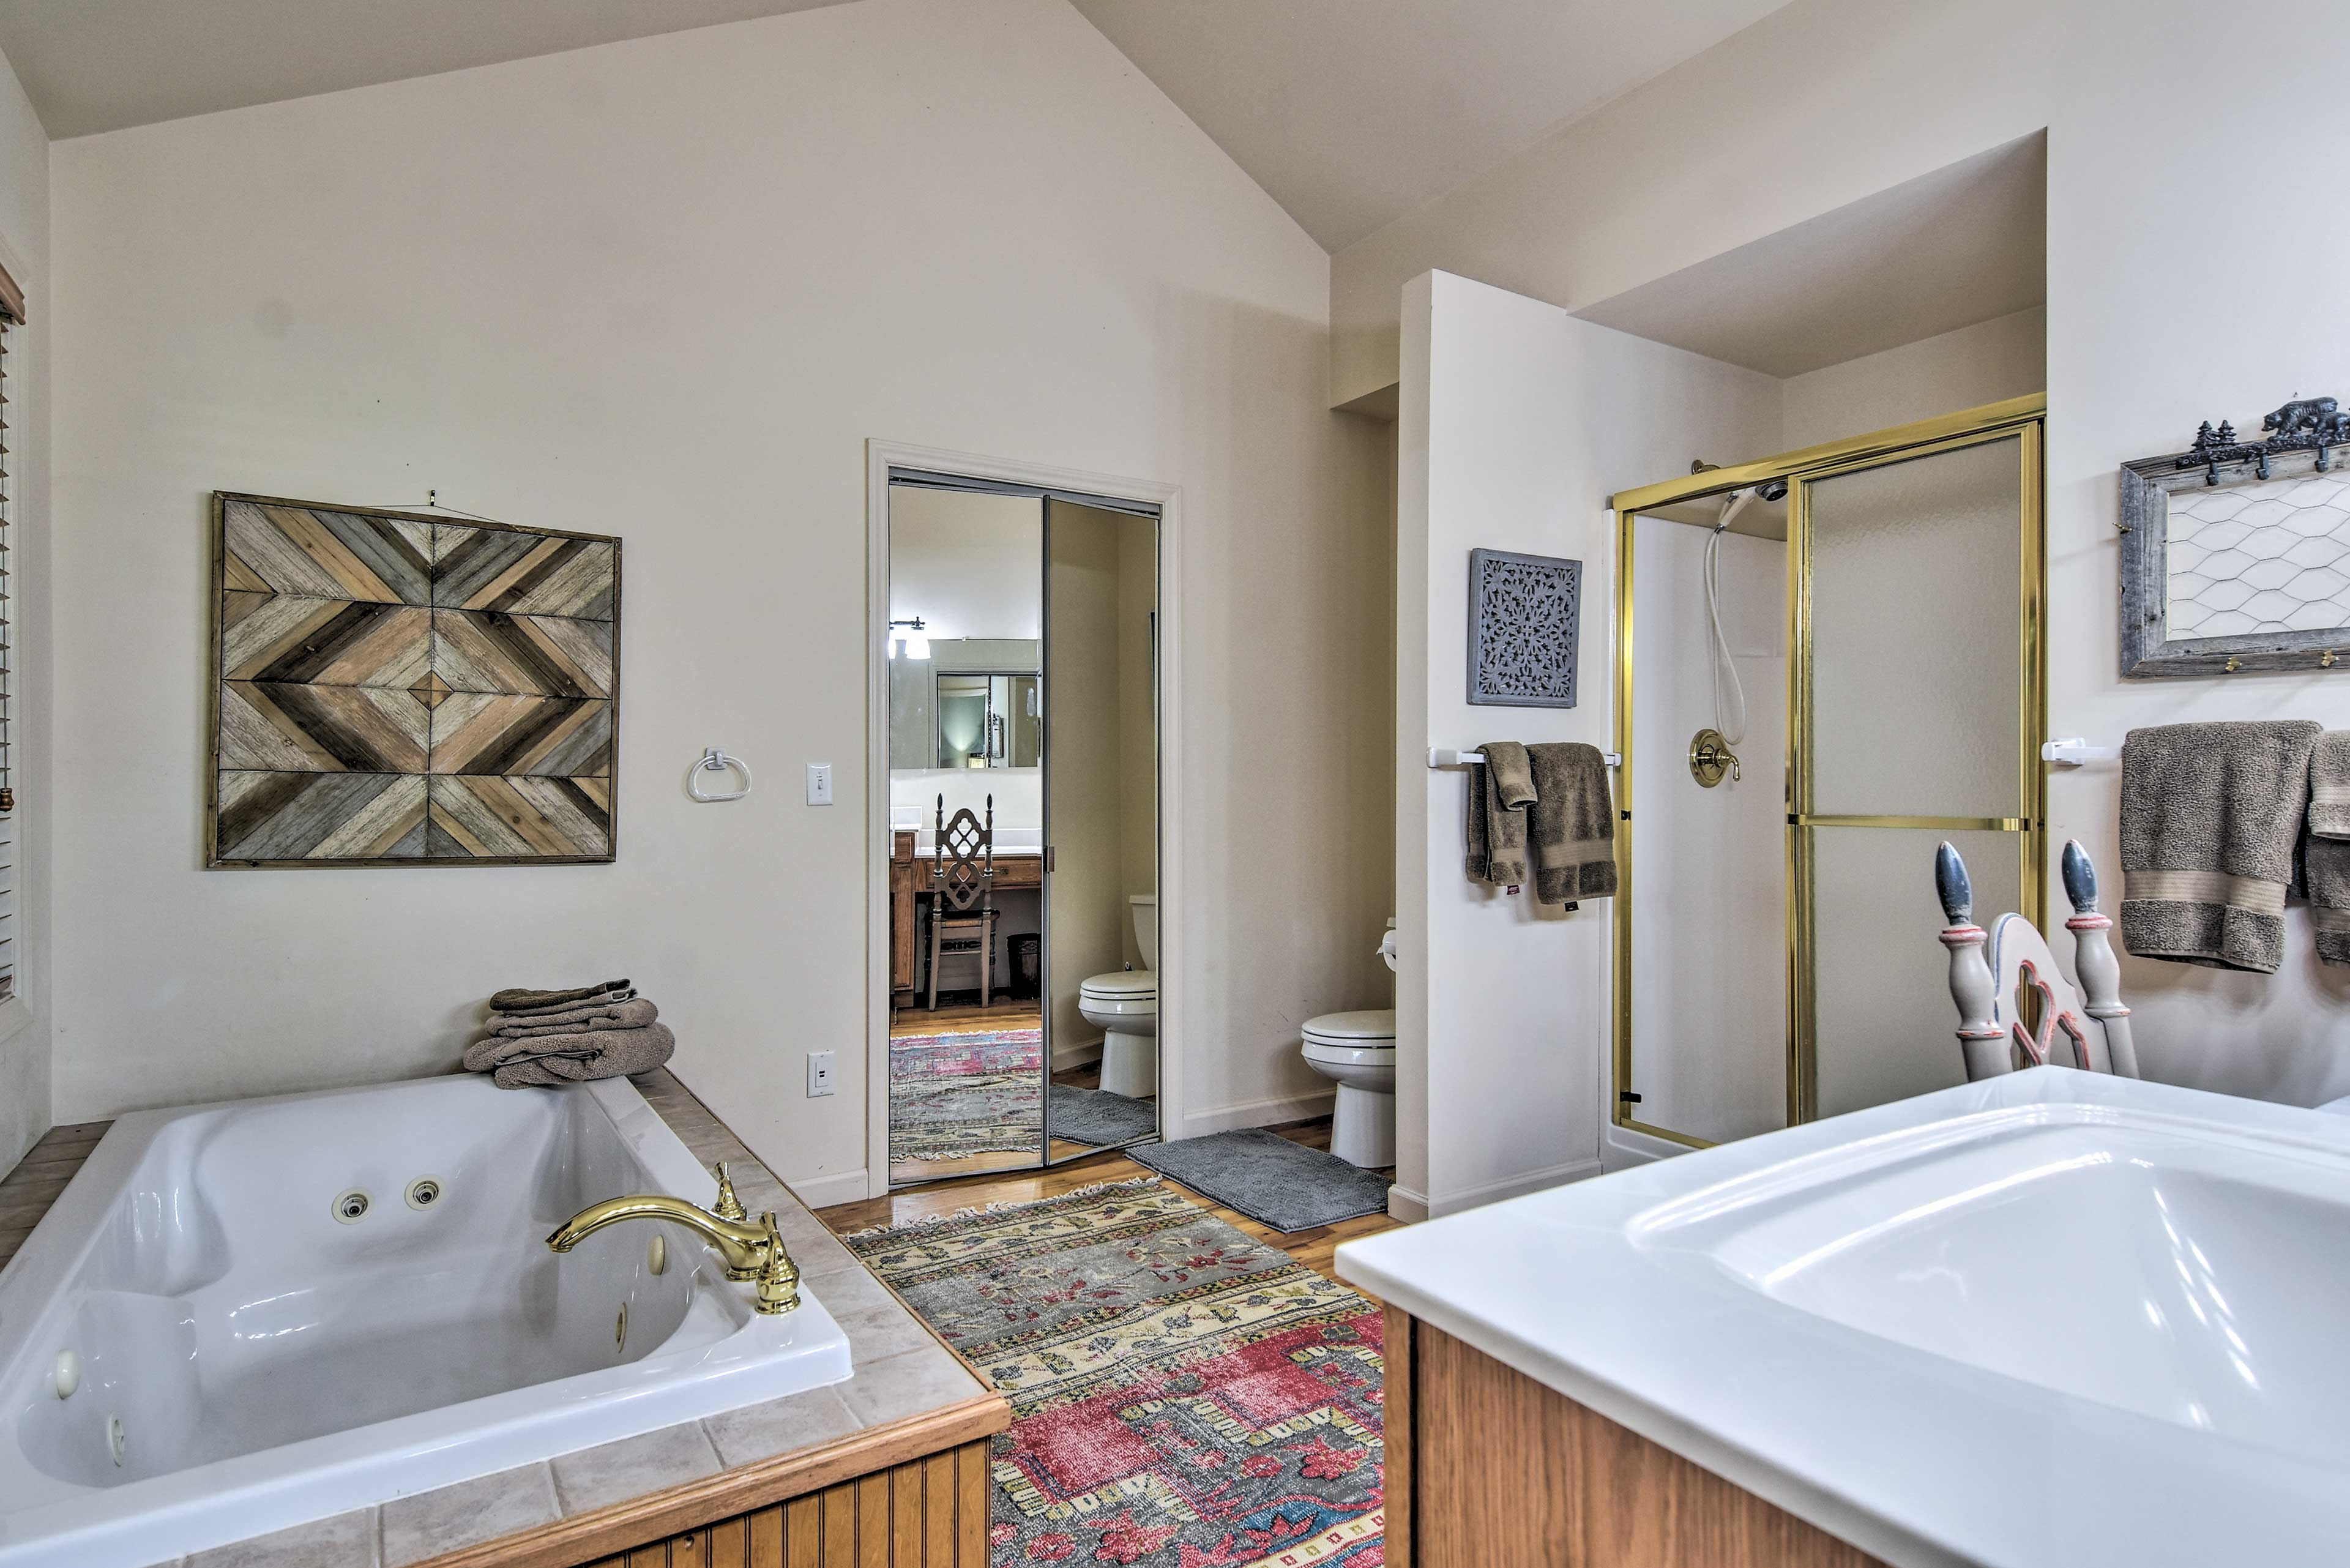 The master bath features a walk-in shower, soaking tub and Jack-and-Jill sinks.